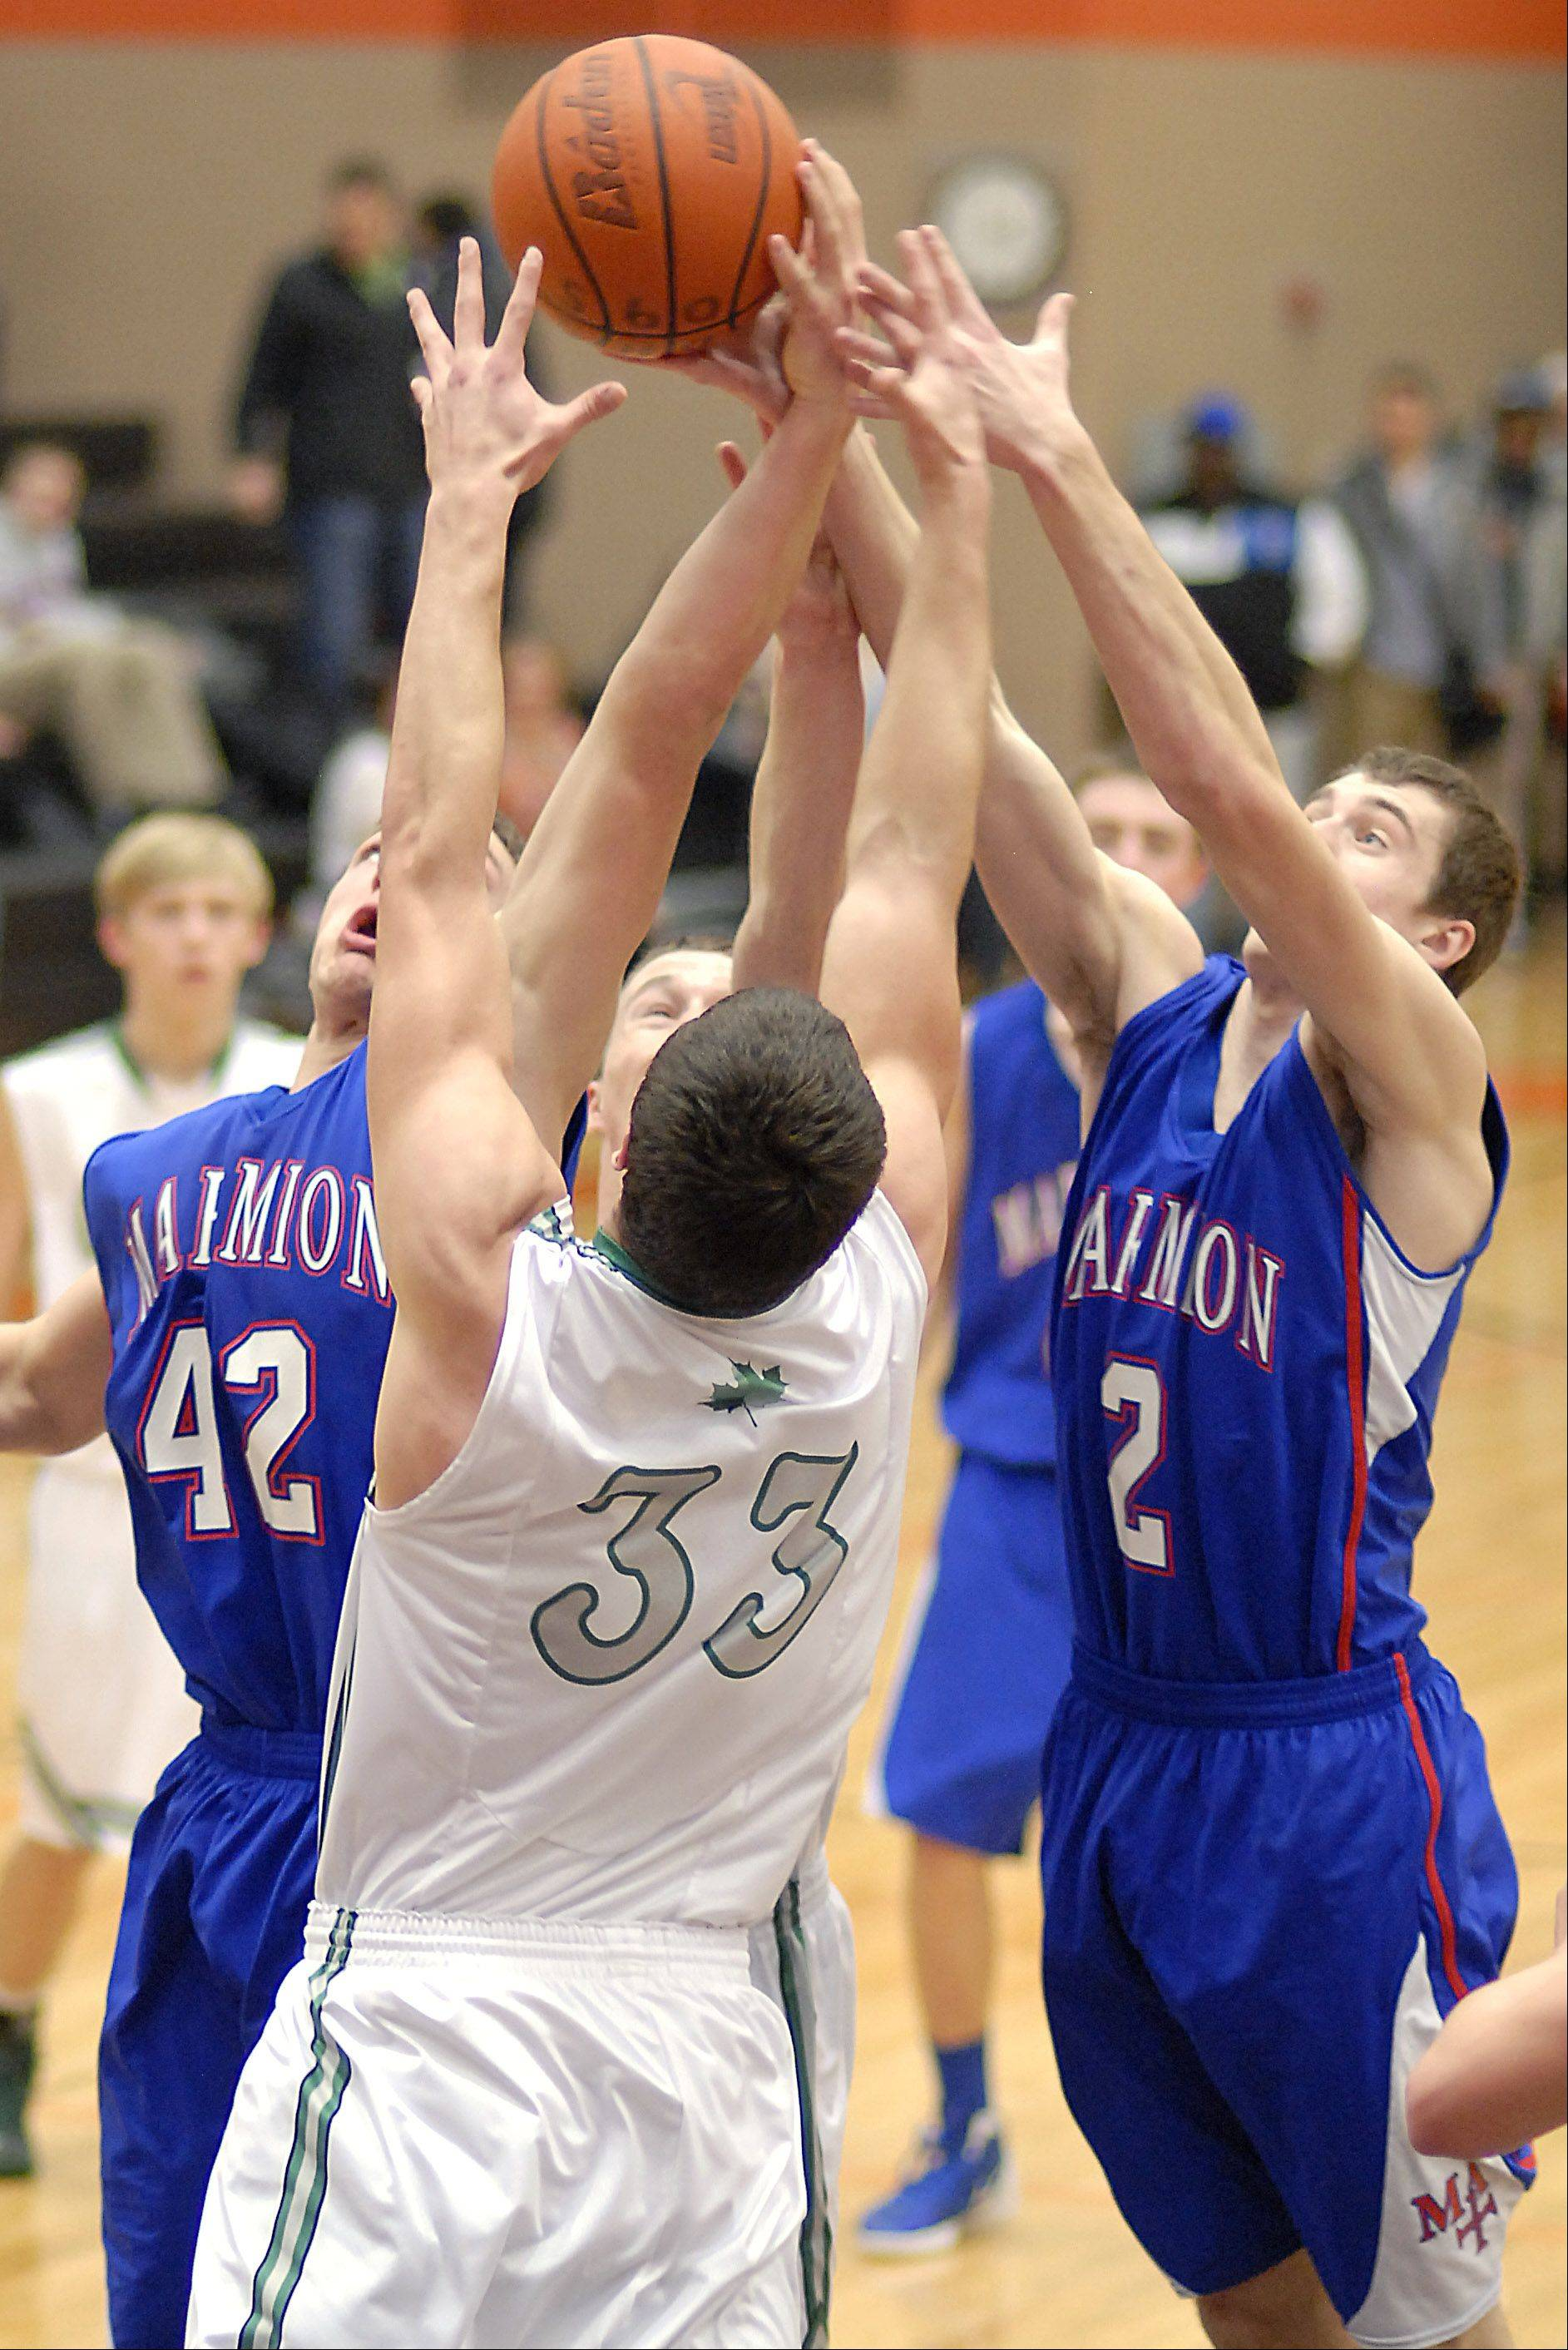 Marmion's Jordan Glasgow and Jake Ruddy leap for a rebound with Geneseo's Grant Burress in the first quarter of the DeKalb tournament on Saturday, December 22.